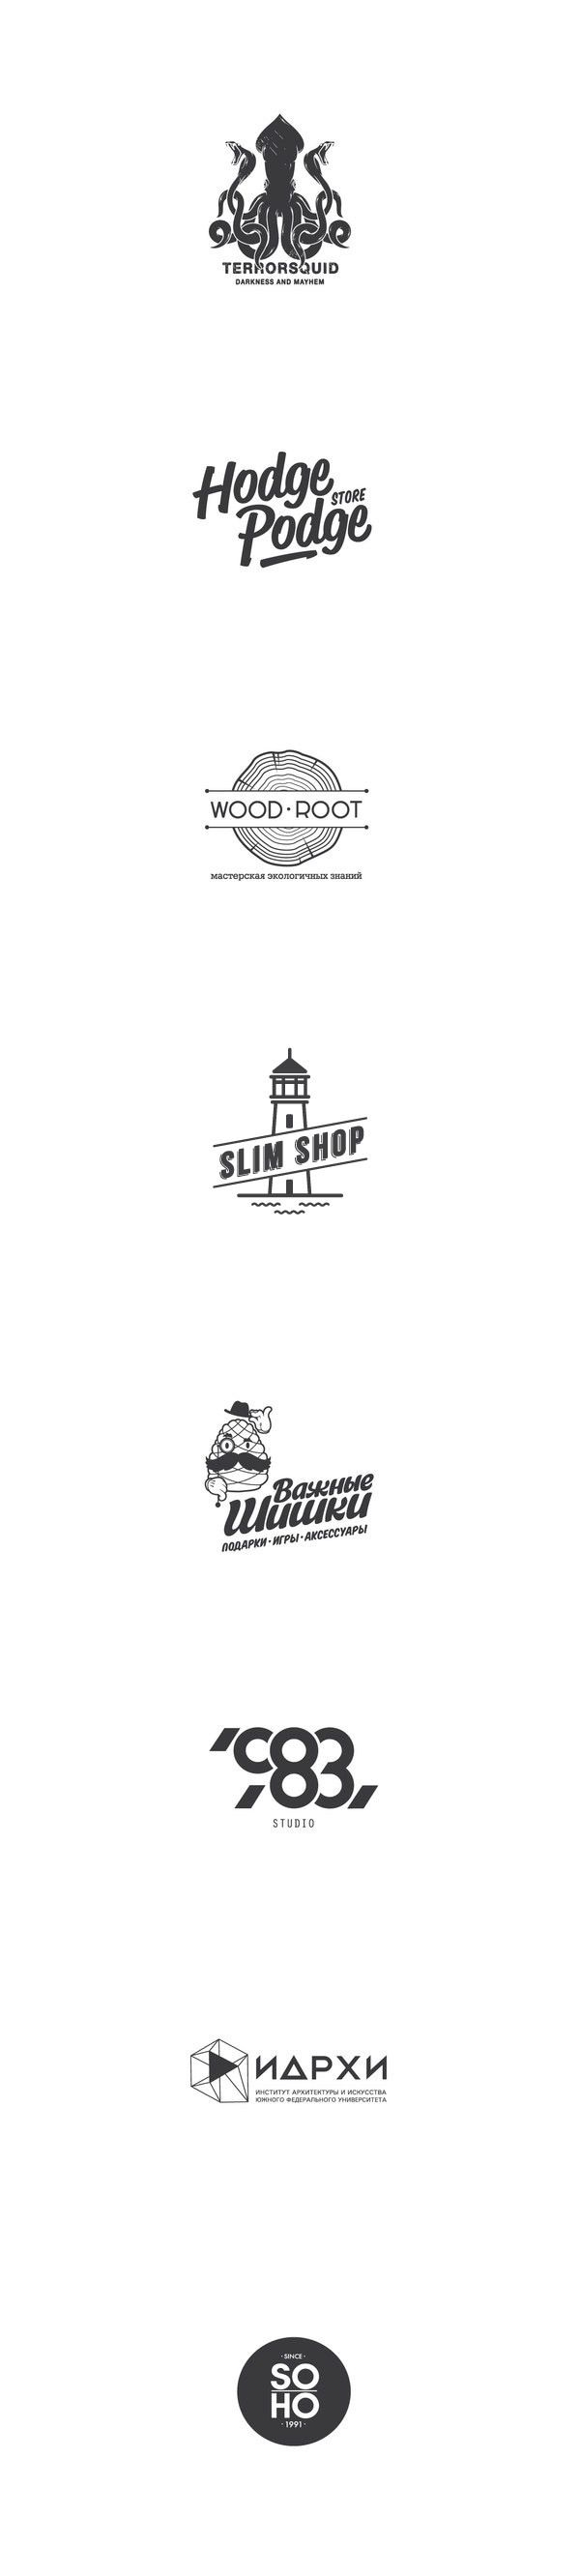 LOGOS /12 by Hobo and Sailor , via Behance